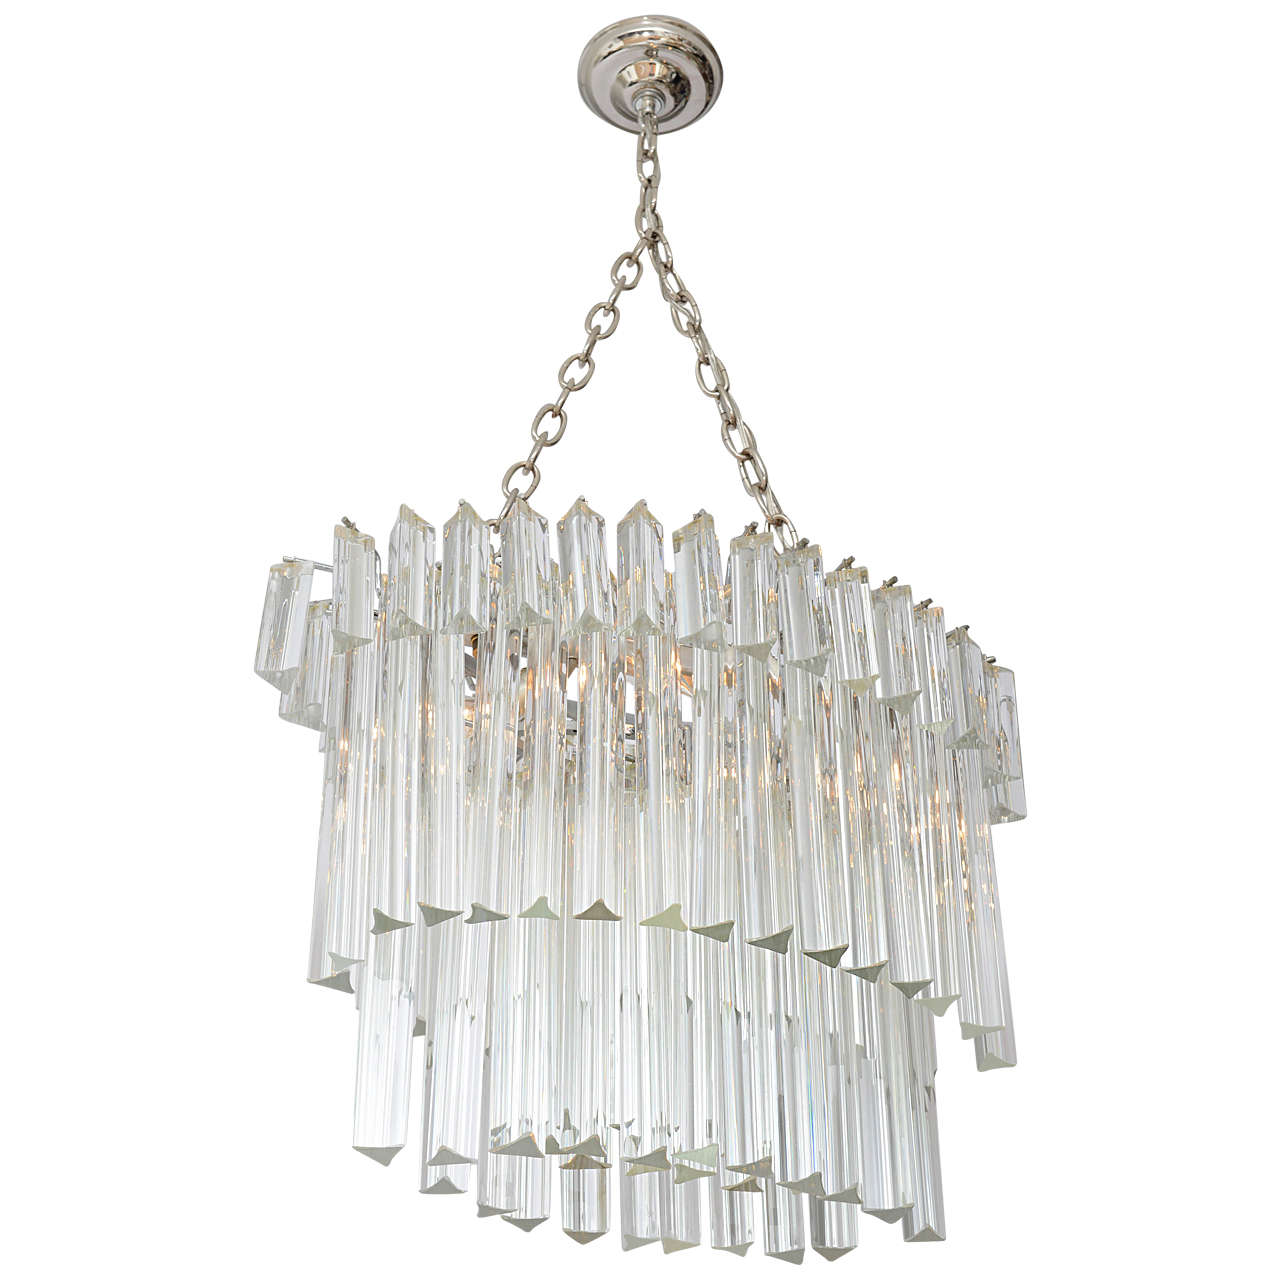 Venini Three-Tier Oval Glass Prism Chandelier at 1stdibs